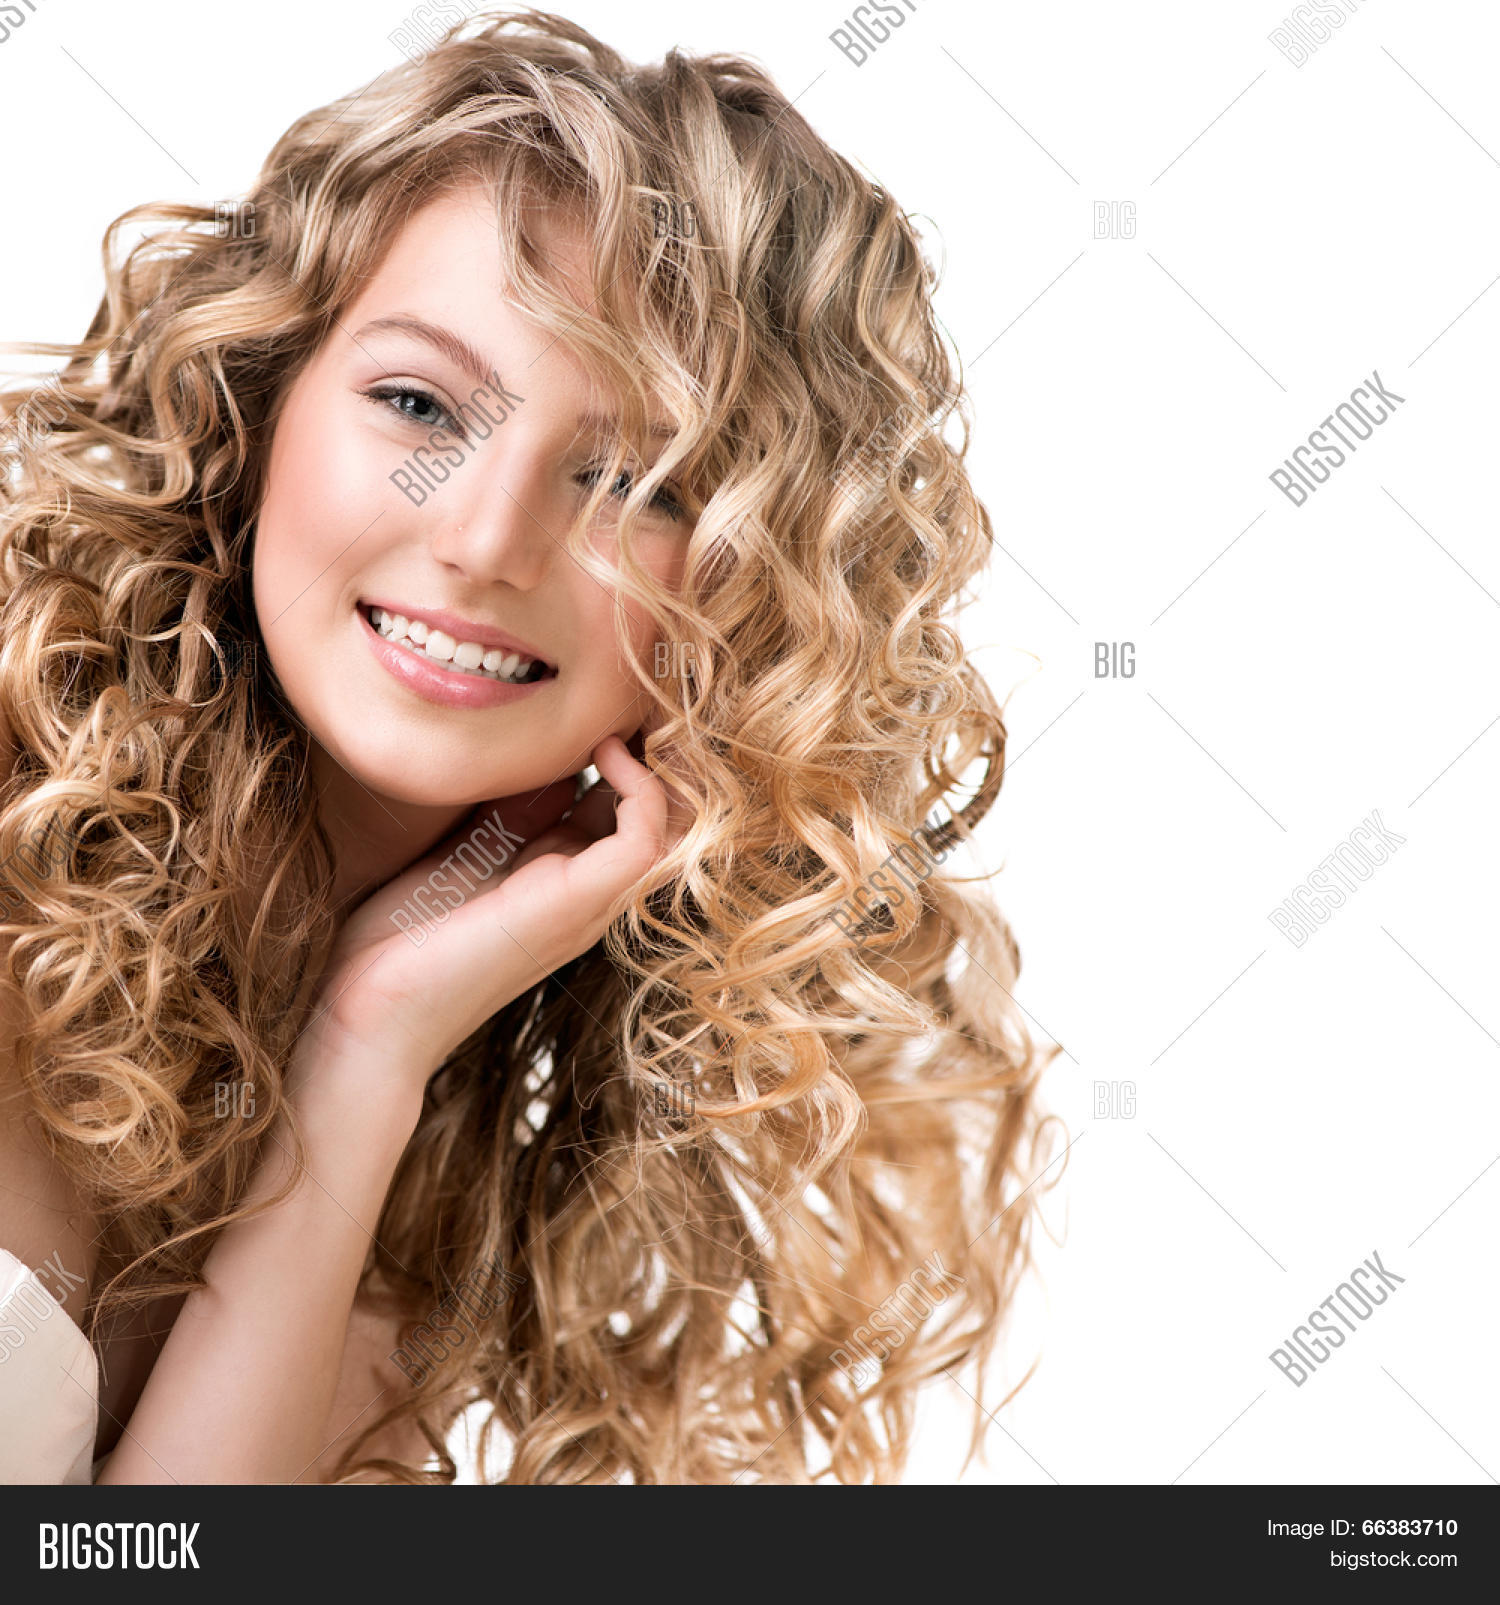 Beauty Girl Blonde Curly Hair. Image & Photo | Bigstock